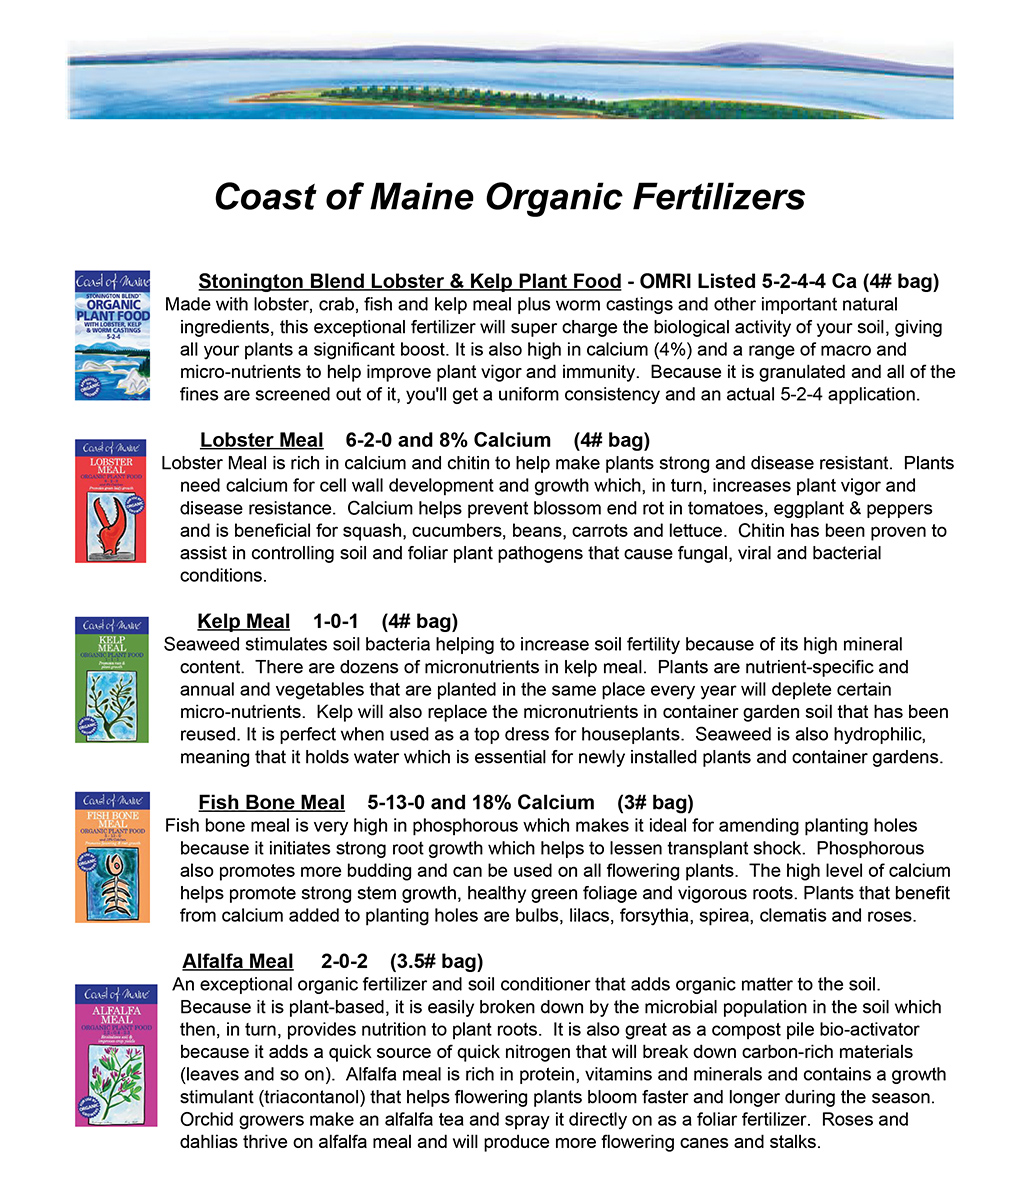 Coast of Maine Organic Fertilizers with images-1.jpg